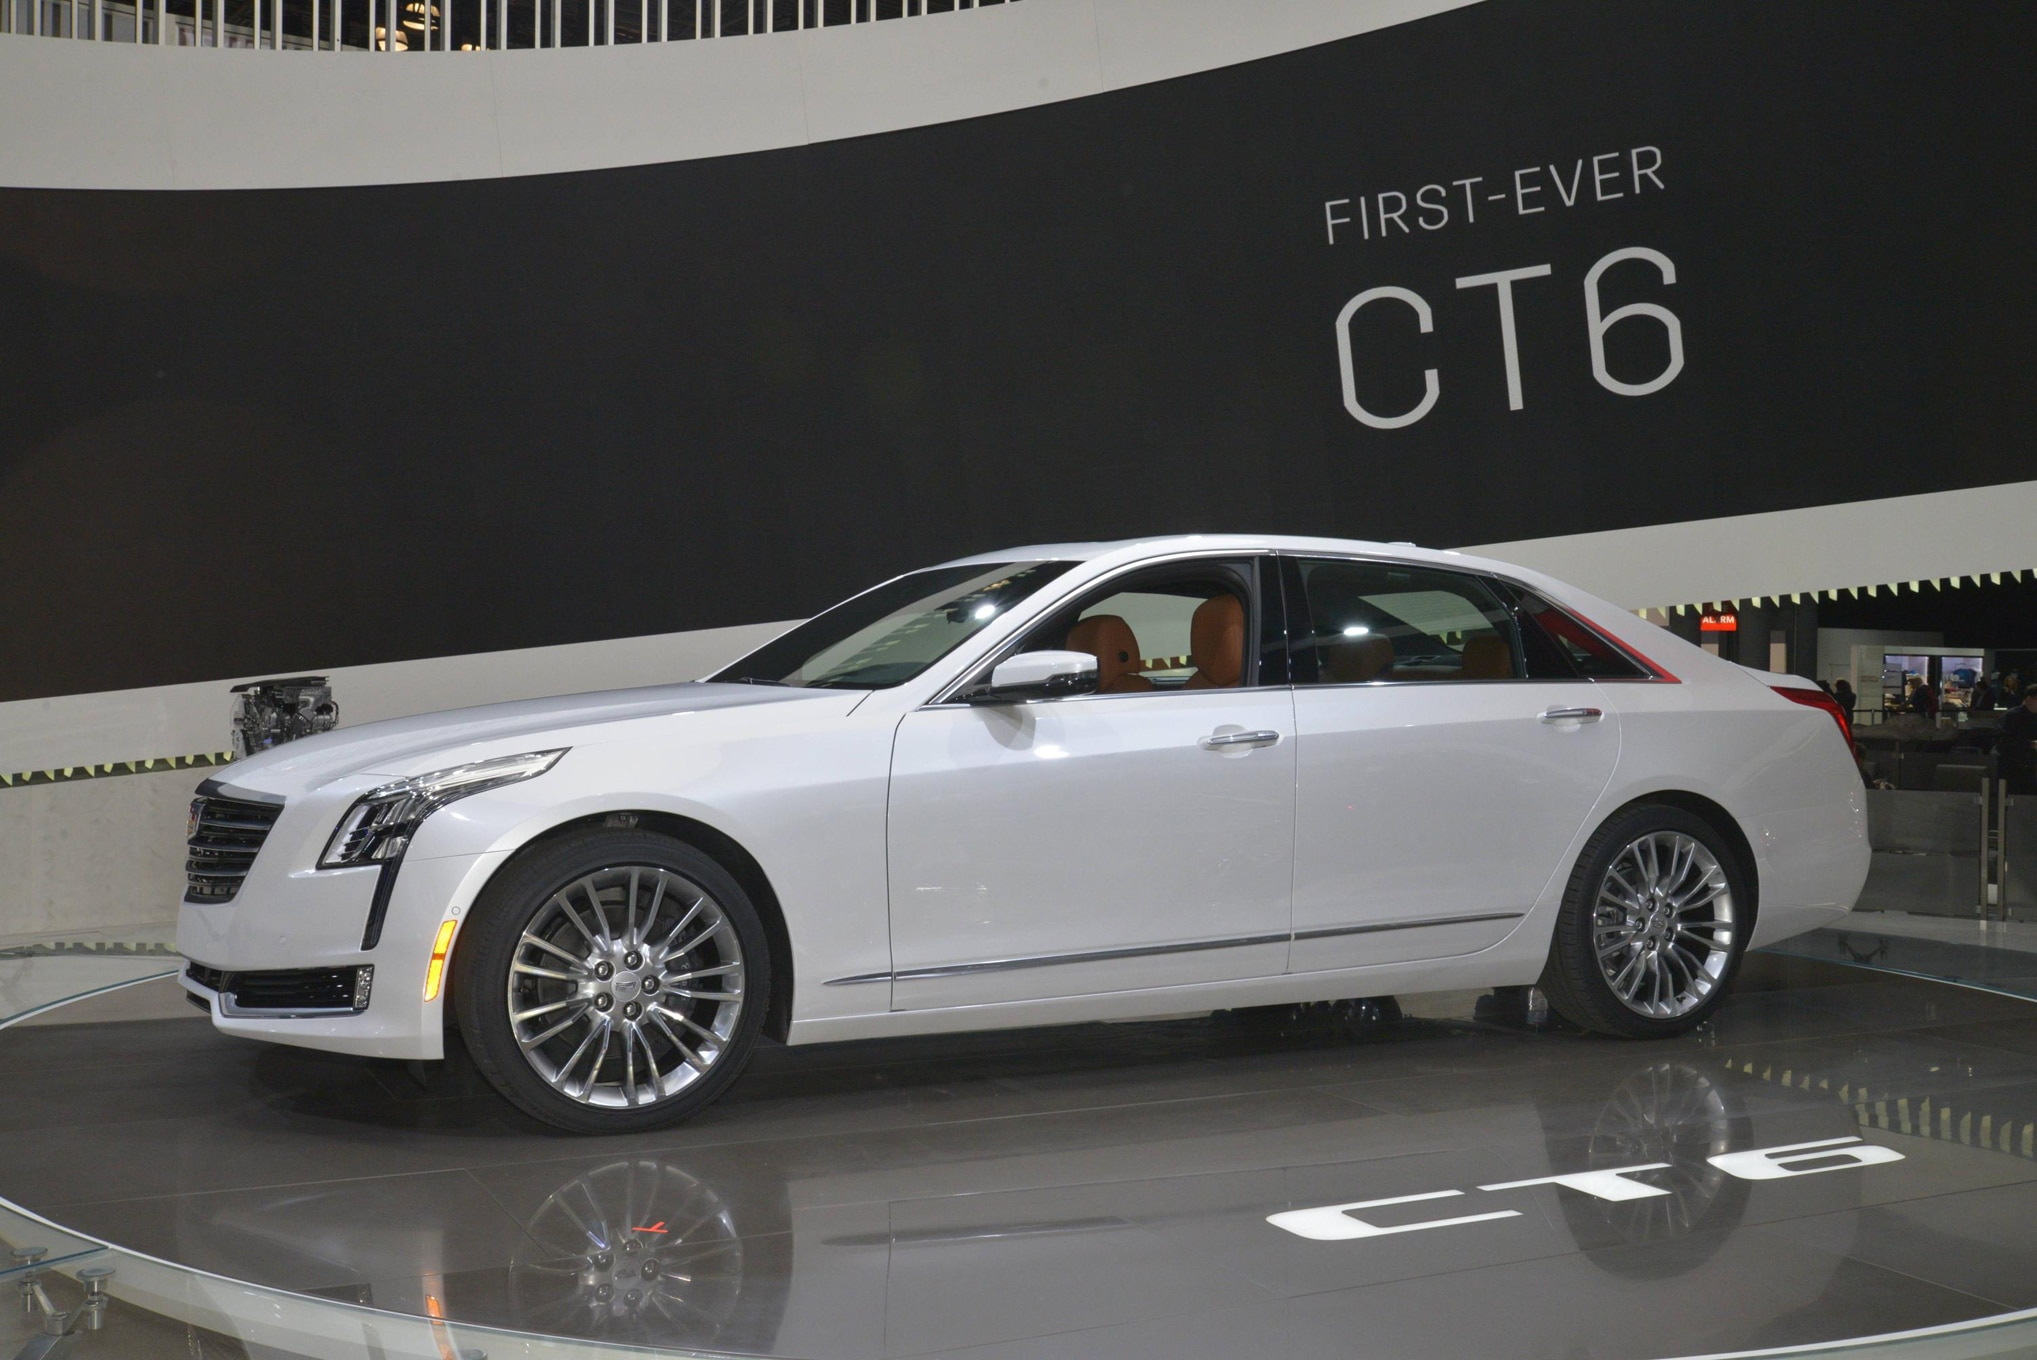 5 Key Things to Know About the 2016 Cadillac CT6